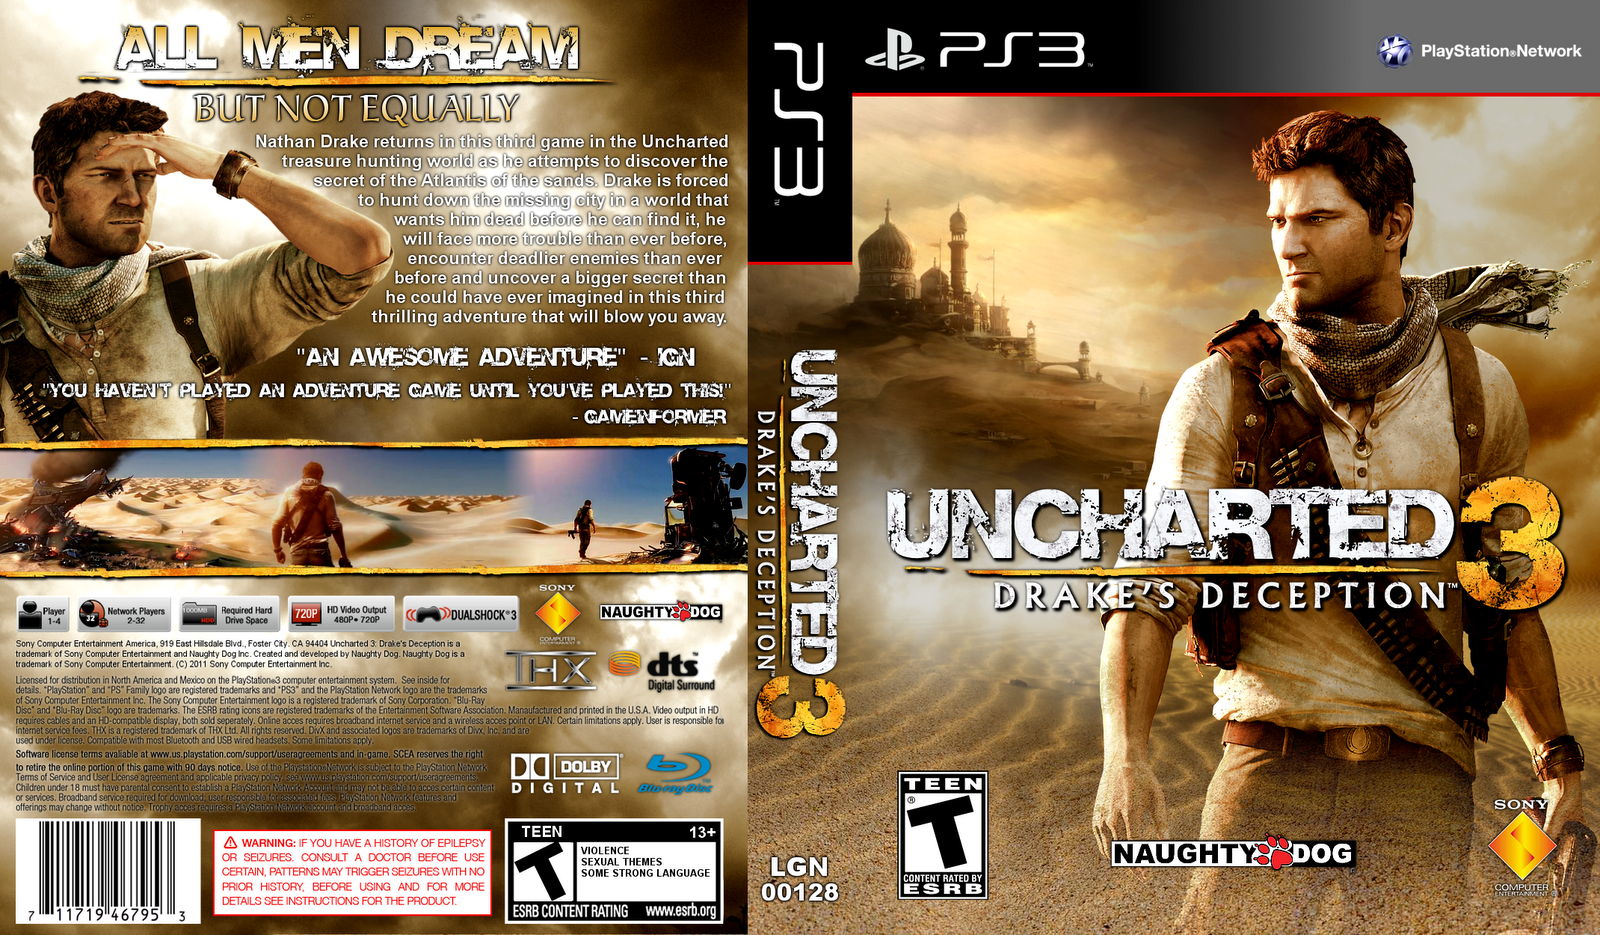 Uncharted 3 Drakes Deception HD Wallpaper Cover Download 1600x935